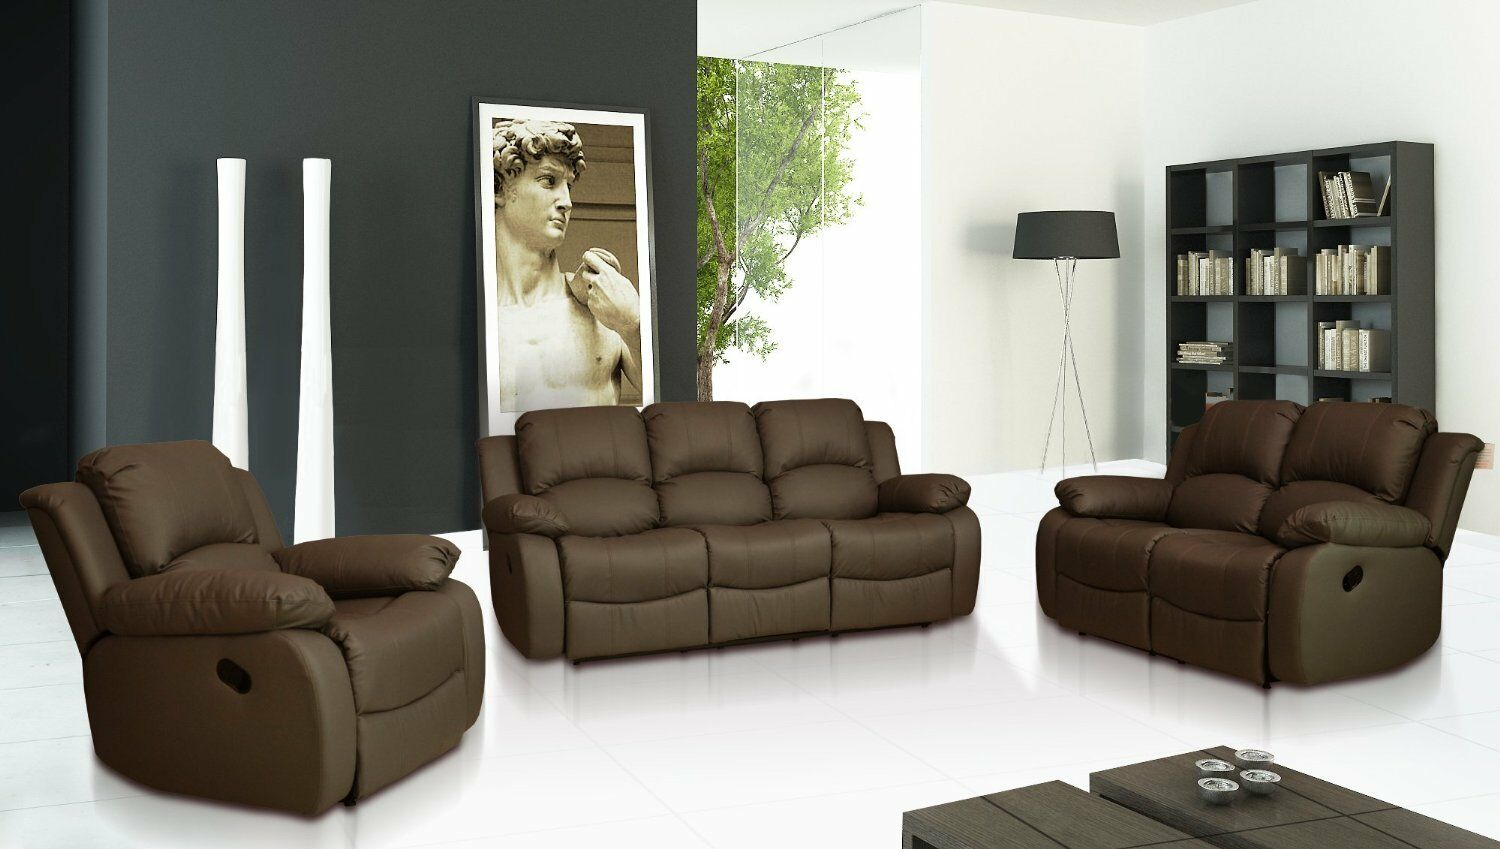 sale new luxury valencia 3 2 1 seater leather recliner sofas black brown cream ebay. Black Bedroom Furniture Sets. Home Design Ideas